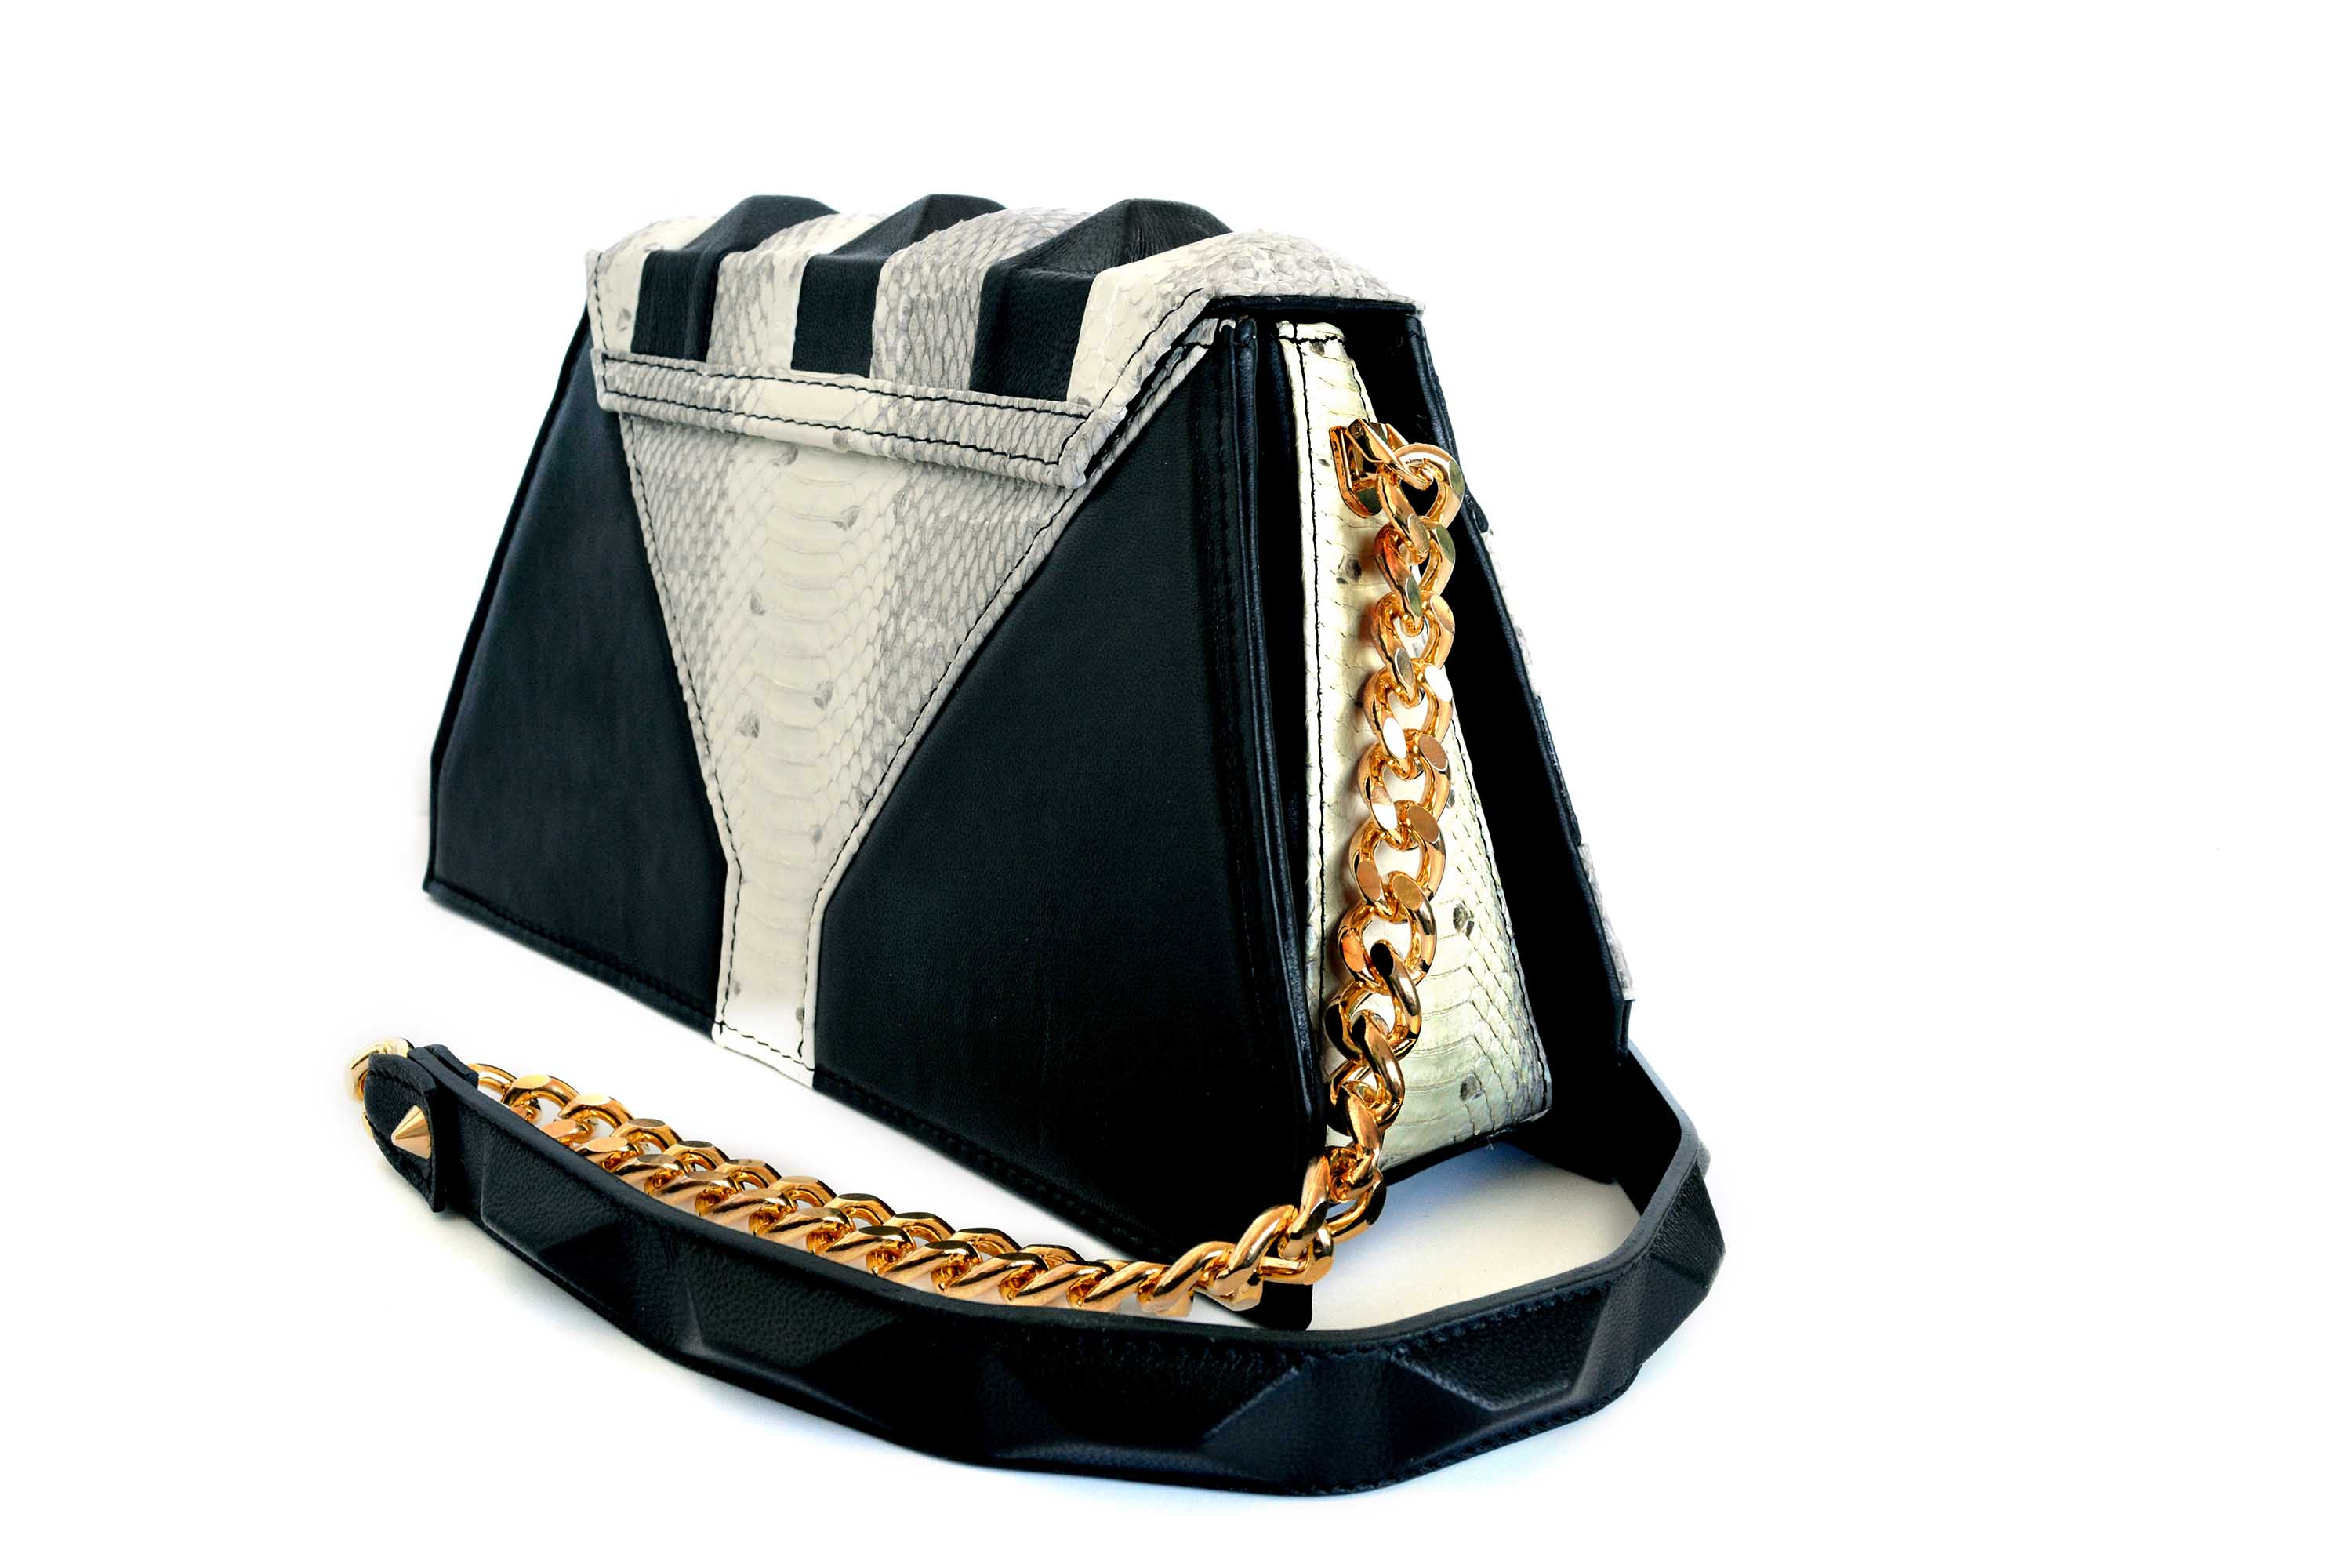 luxury-bag-reptile-modern-harleq-sphinx